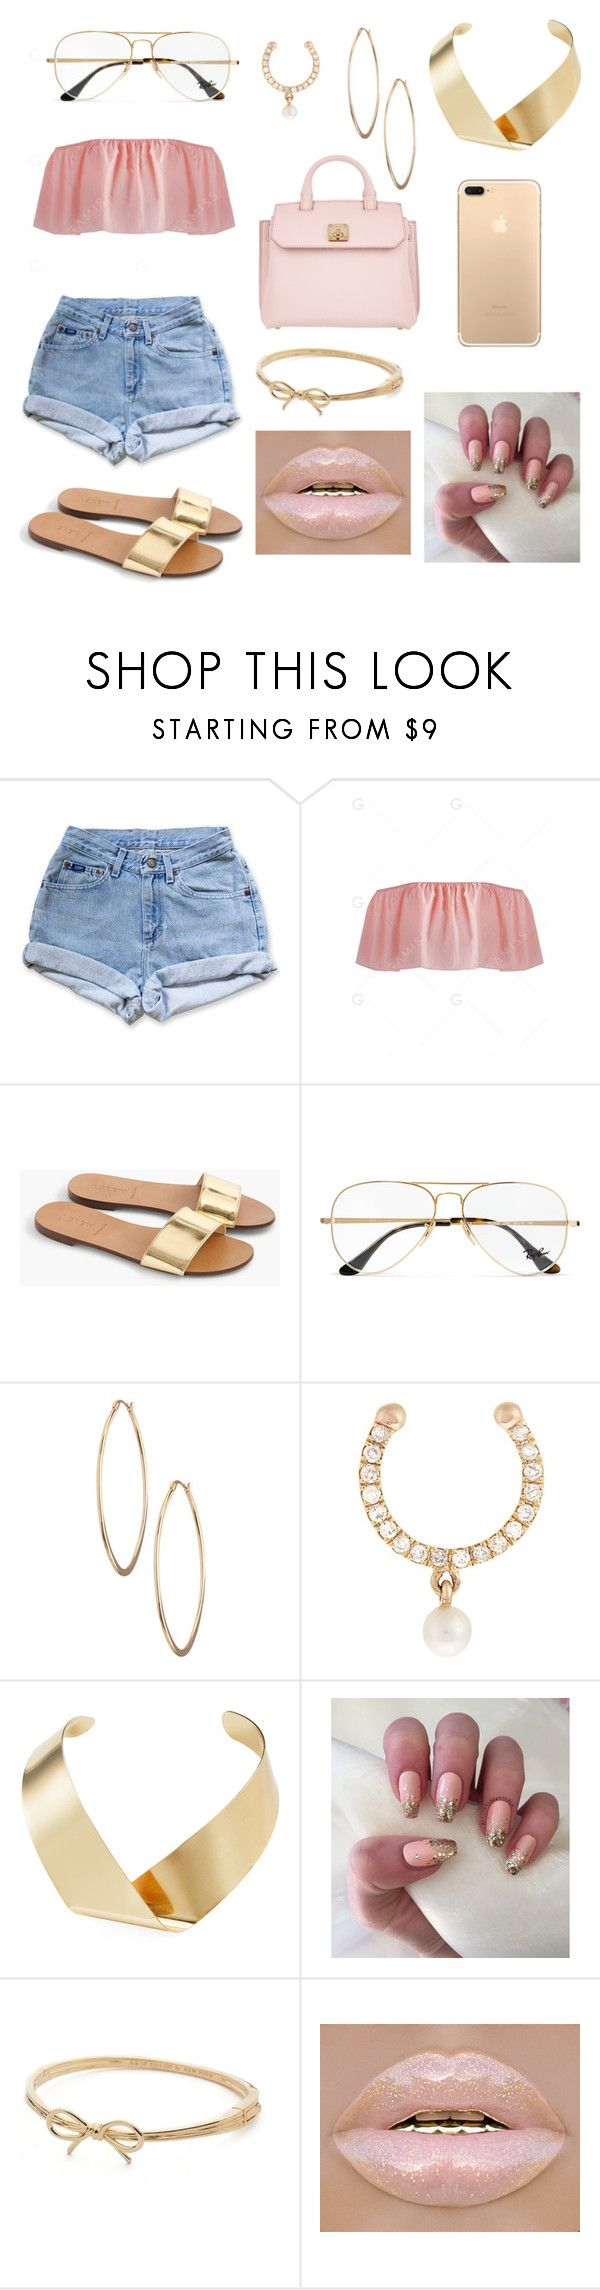 """do yall like it"" by jadabr ❤ liked on Polyvore featuring Levi's, J.Crew, Ray-Ban, Lydell NYC, Anissa Kermiche, Kenneth Jay Lane, Kate Spade and MCM"